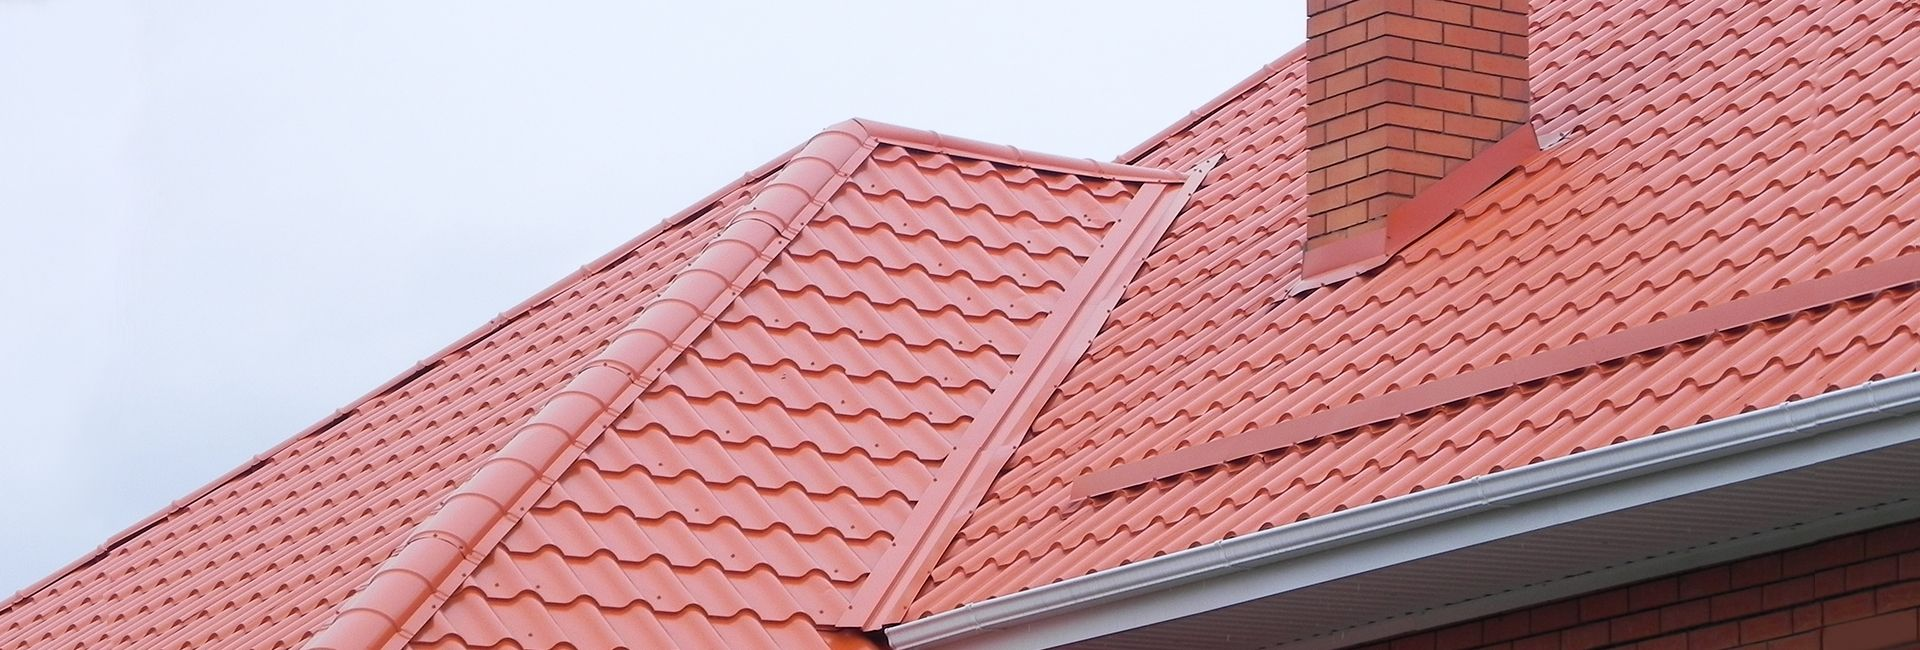 For anyone looking to renovate their home roofing